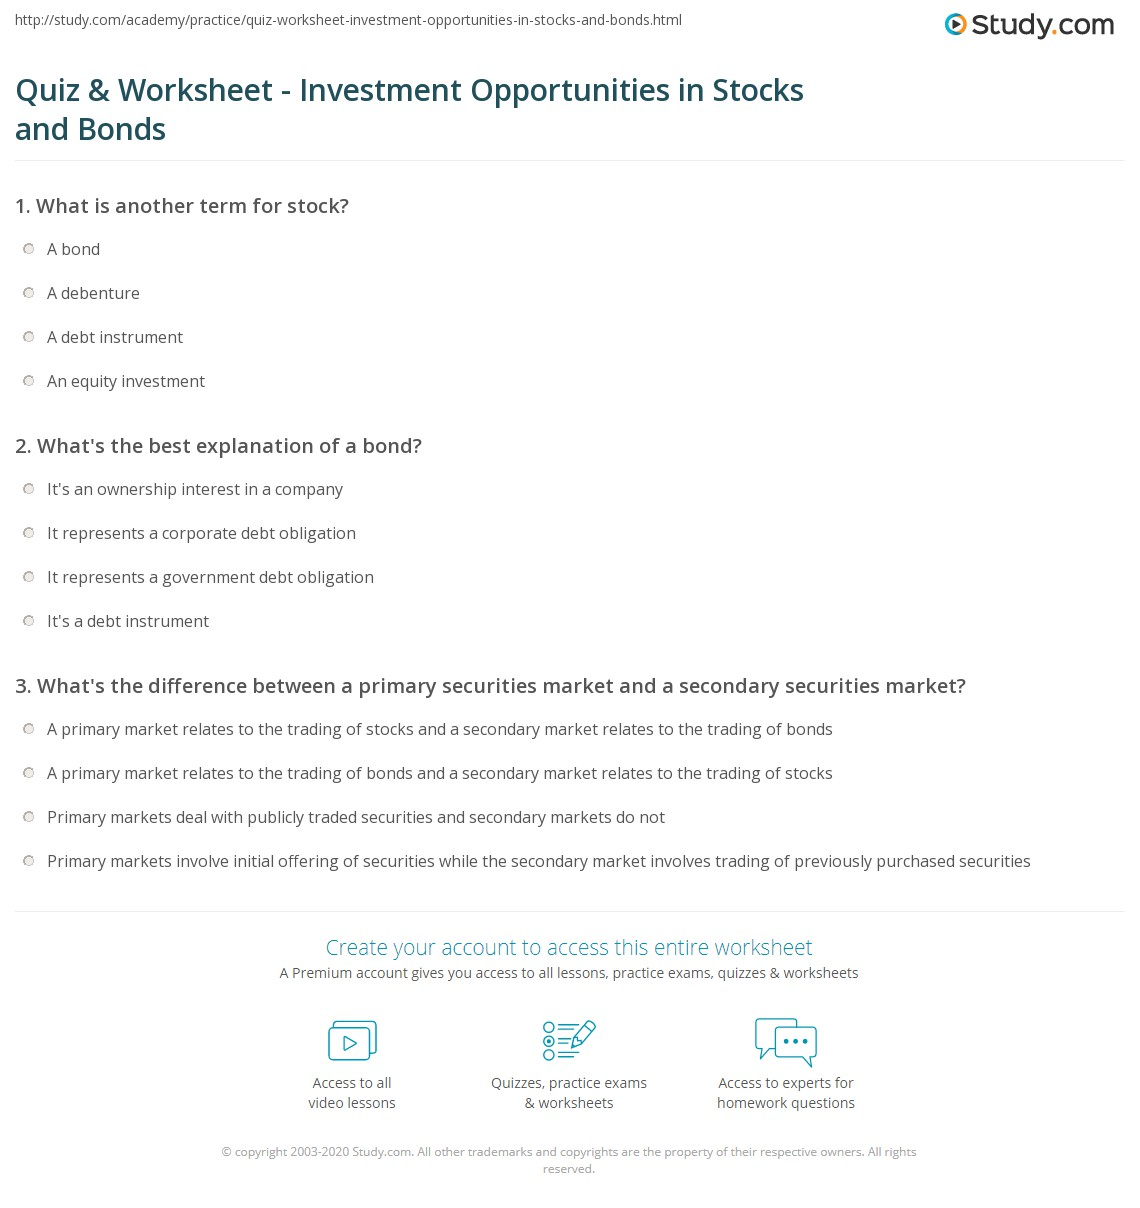 Quiz Worksheet Investment Opportunities In Stocks And Bonds